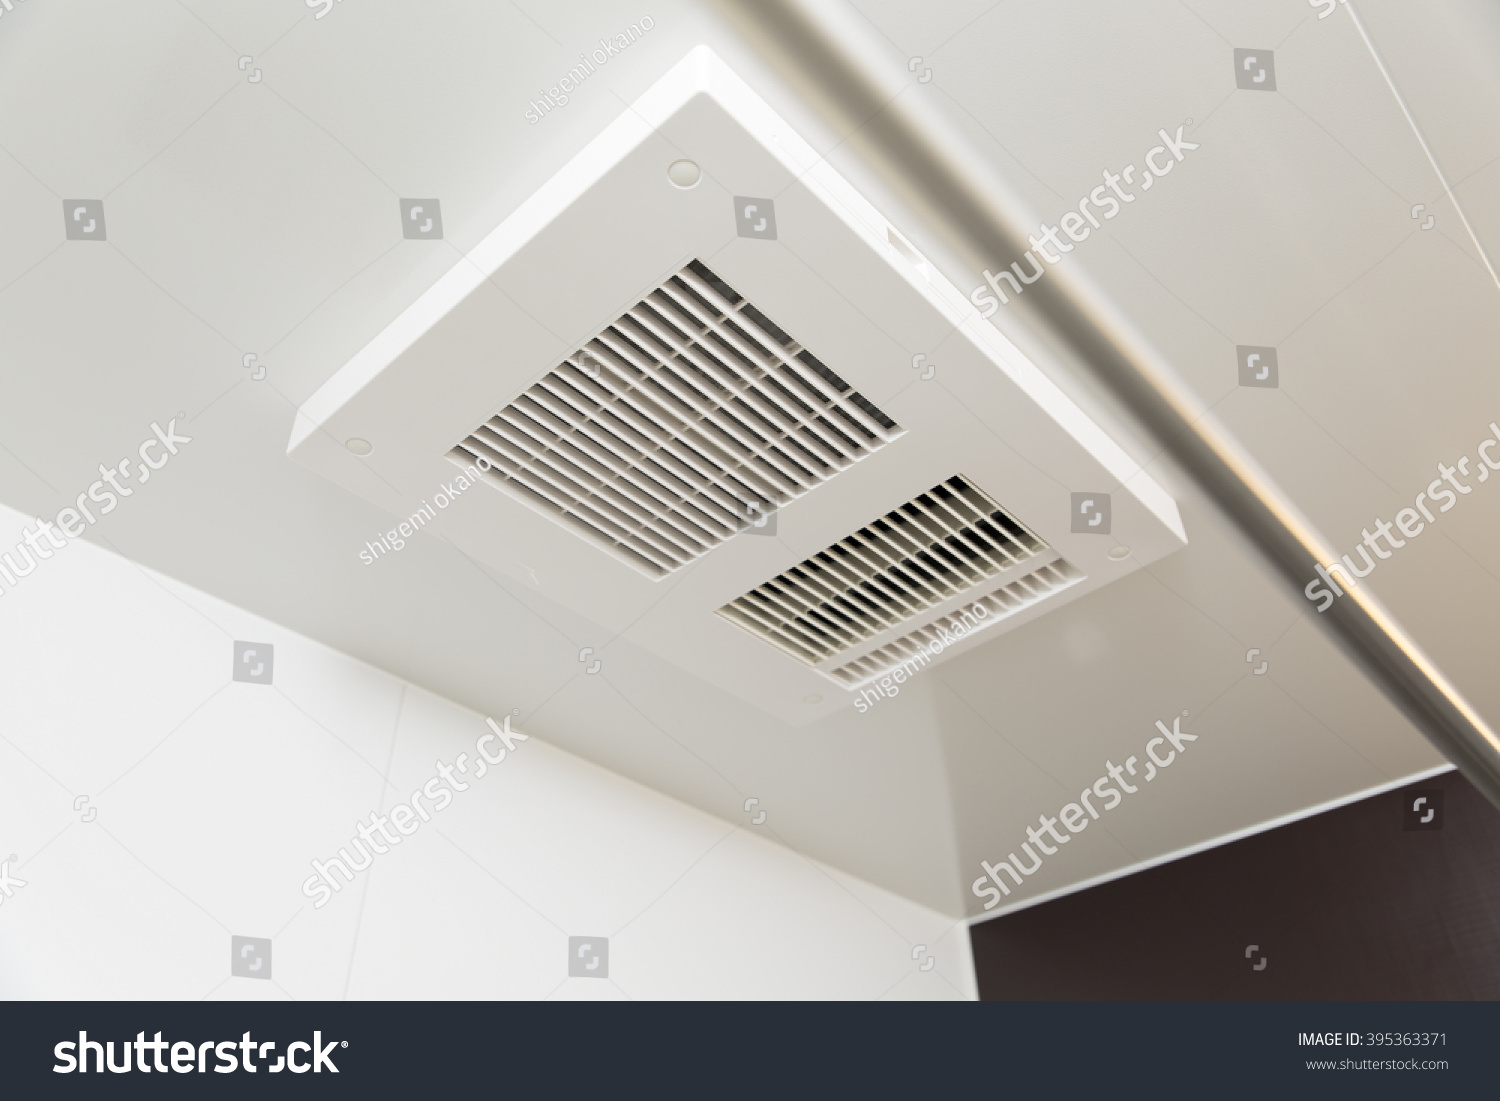 vent reducer image fan installation duct bathroom roof can exhaust ceiling ventilation